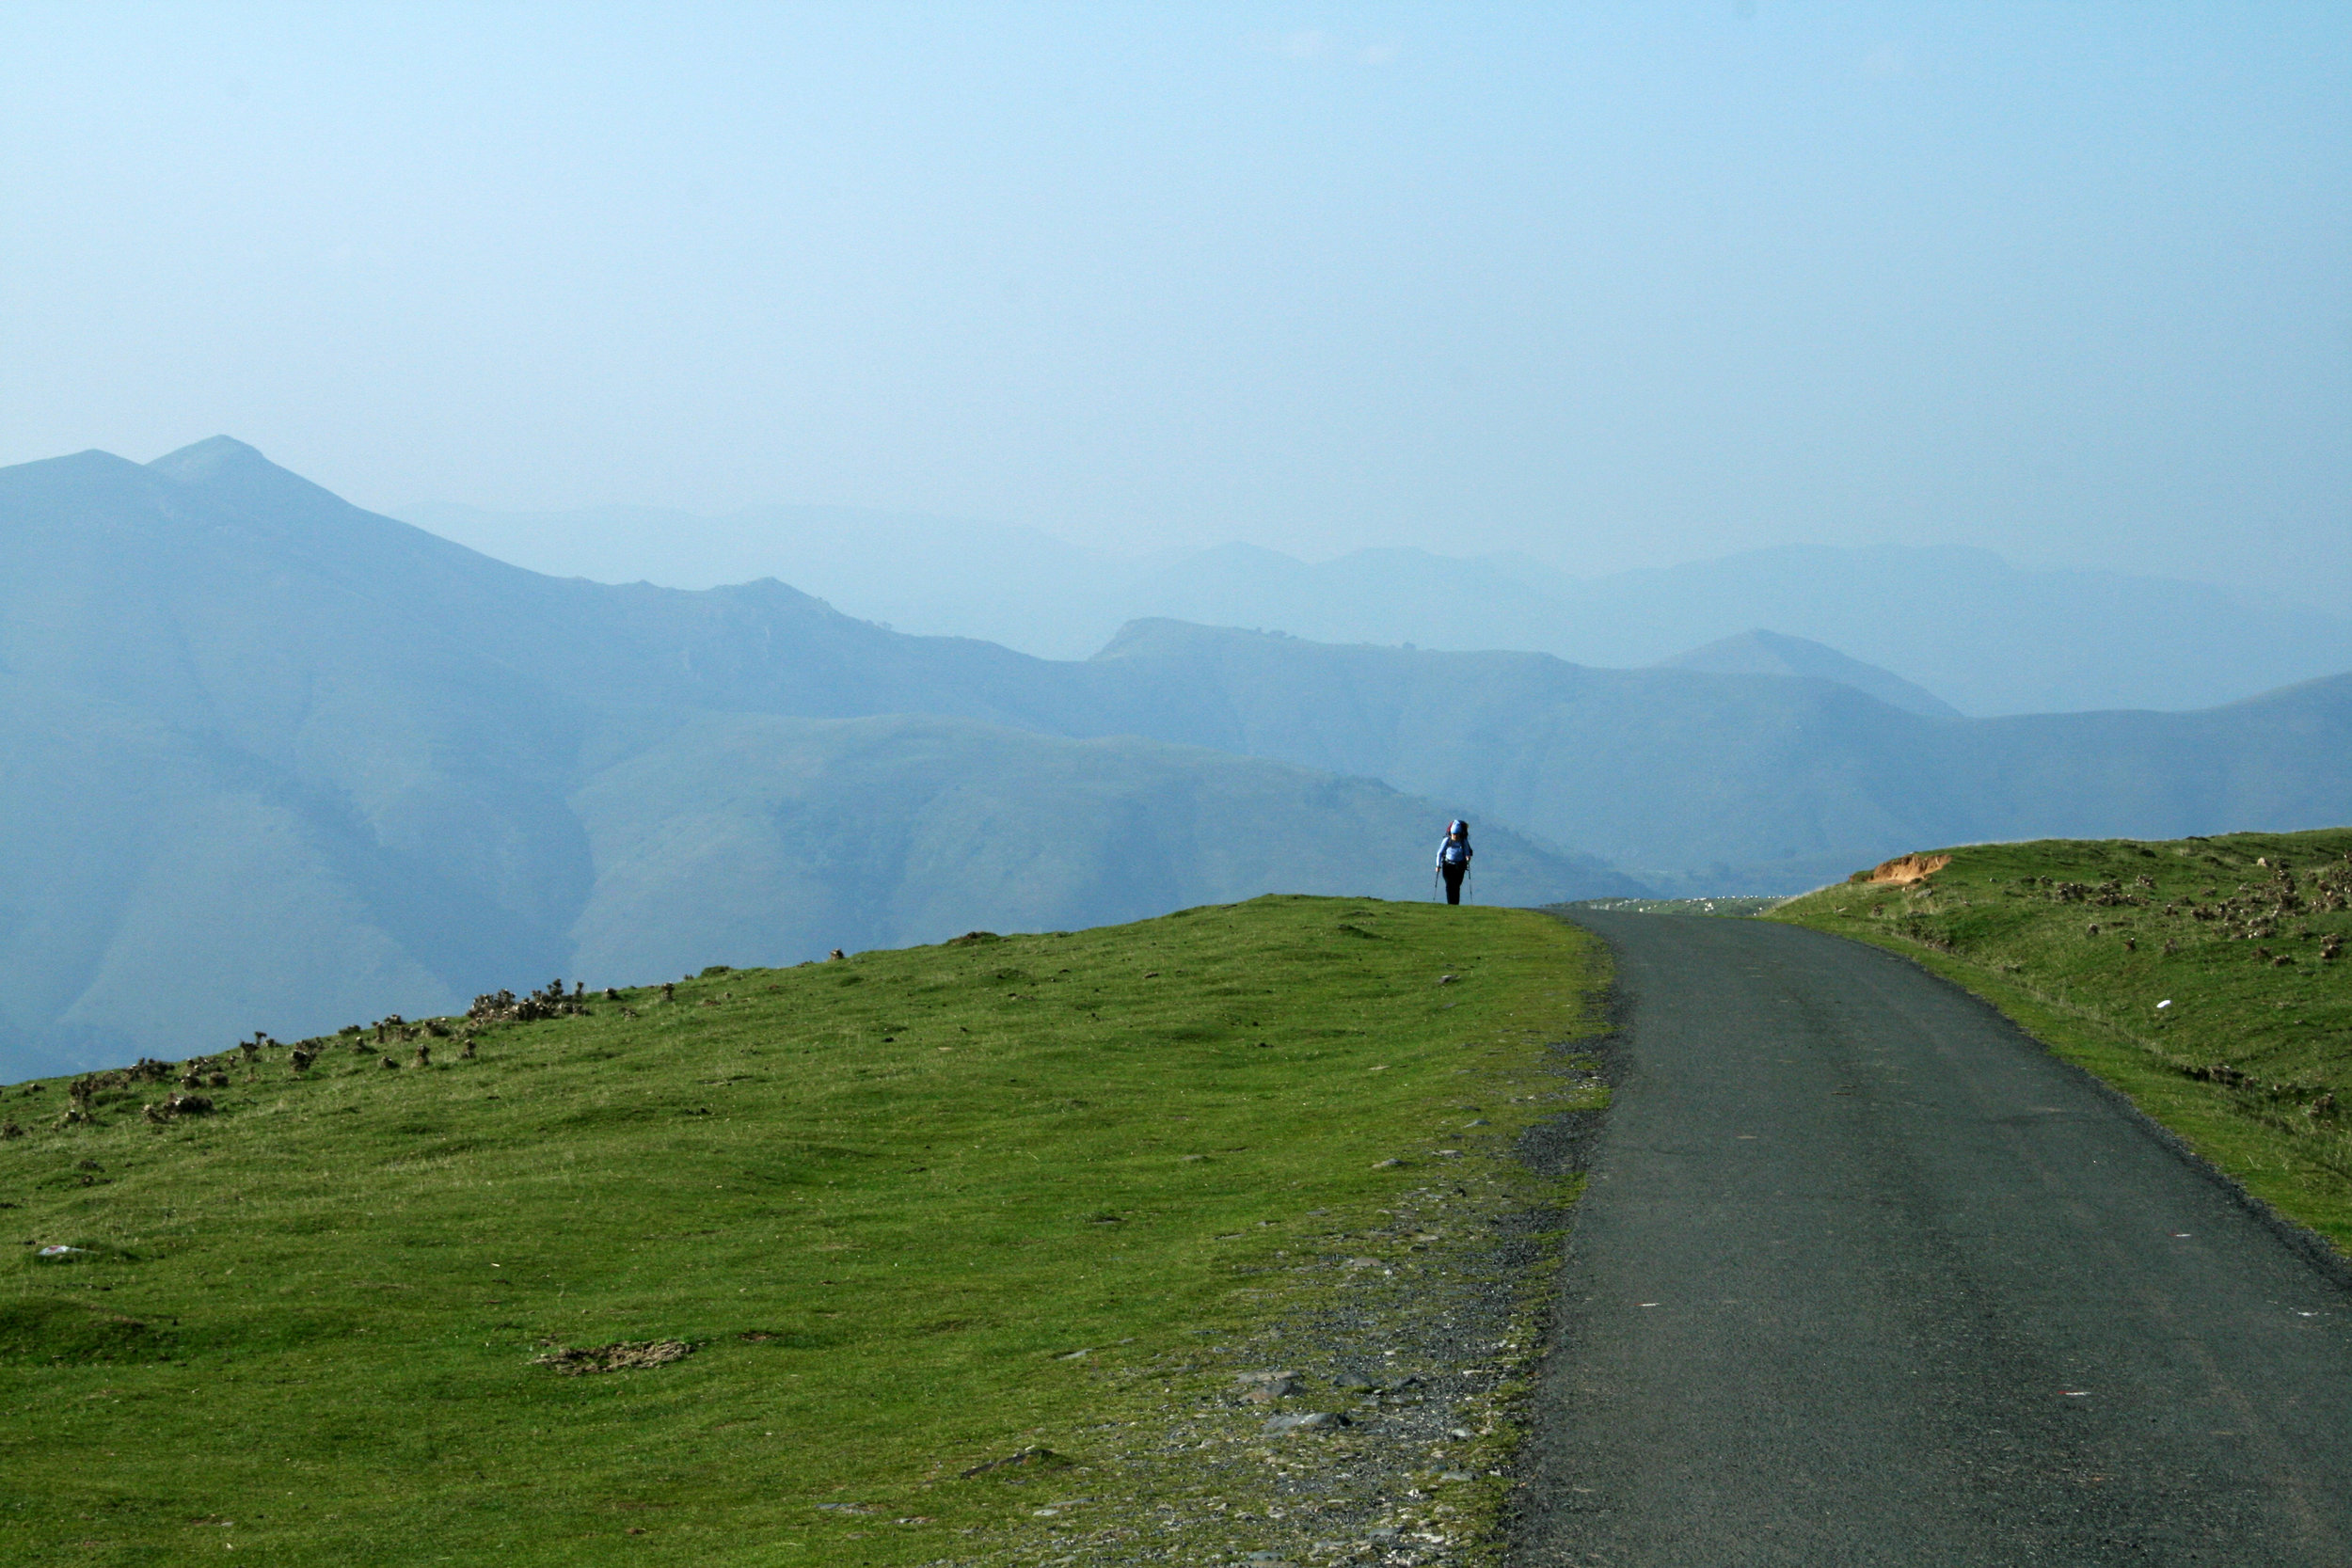 Ascent to the highest elevation over the Pyrenees. On a clear day you can see for miles and miles.